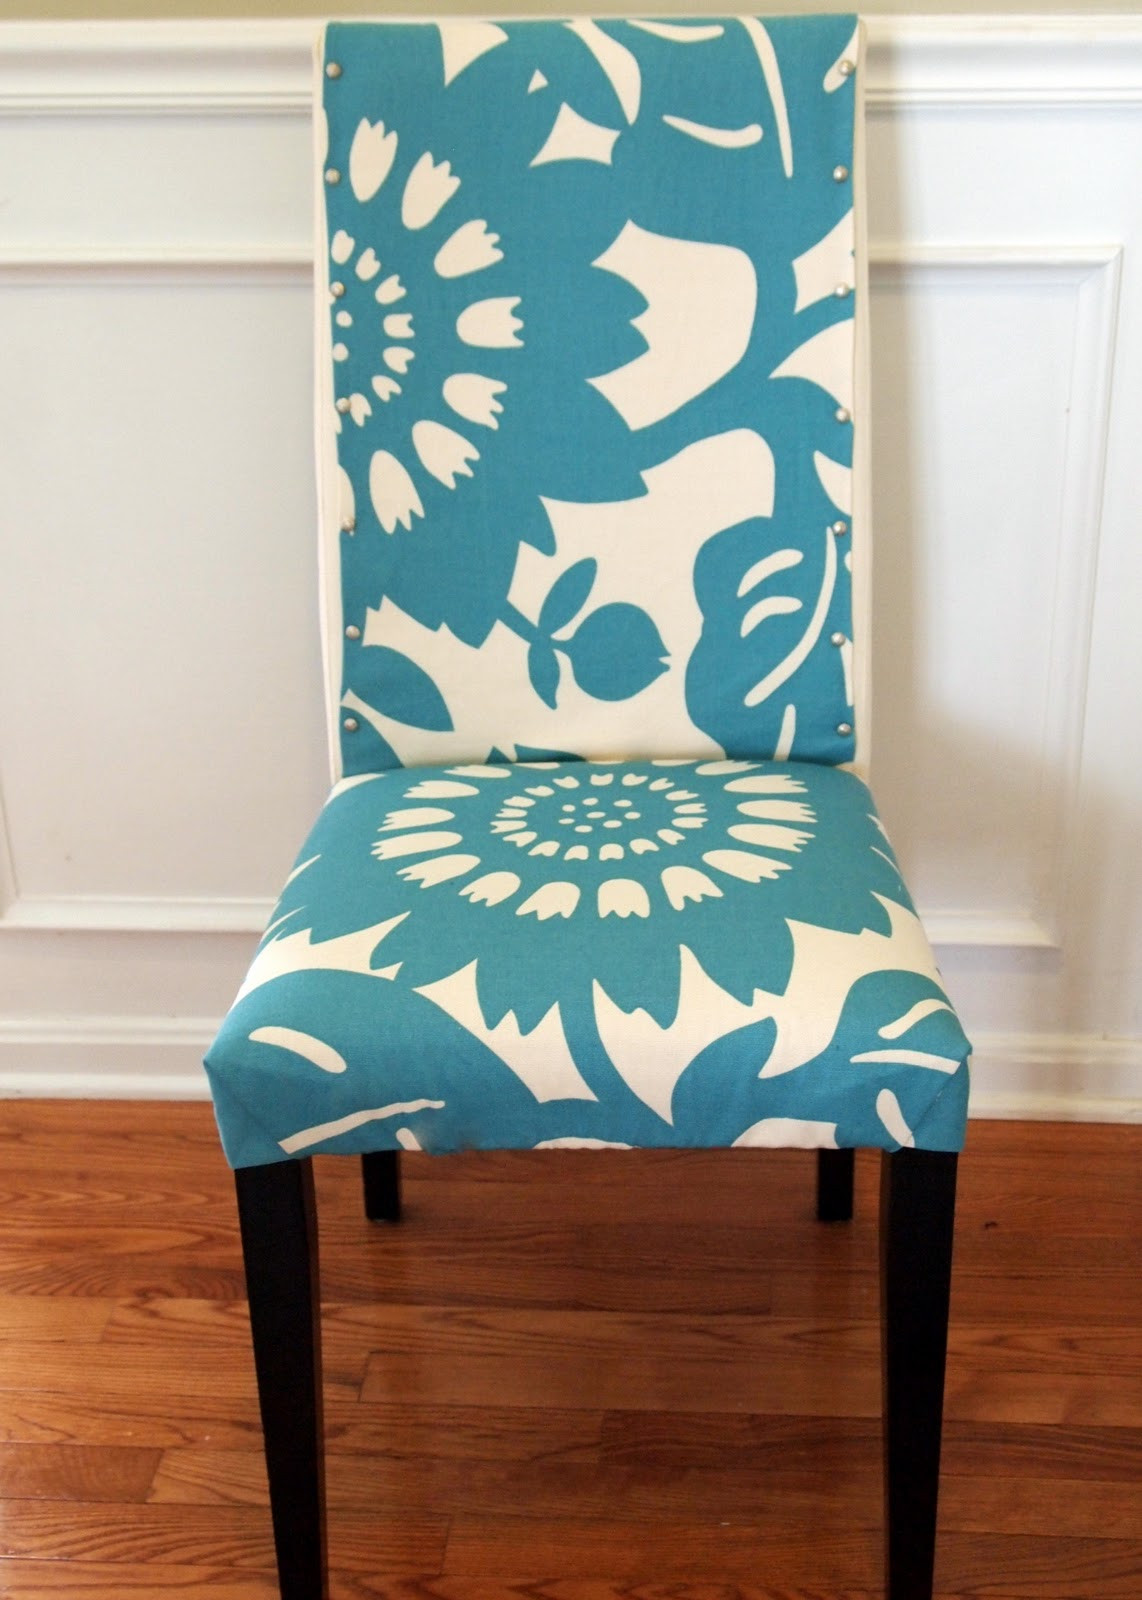 Best ideas about DIY Chair Covers No Sew . Save or Pin LoveYourRoom My Morning Slip Cover Chair Project Using Now.